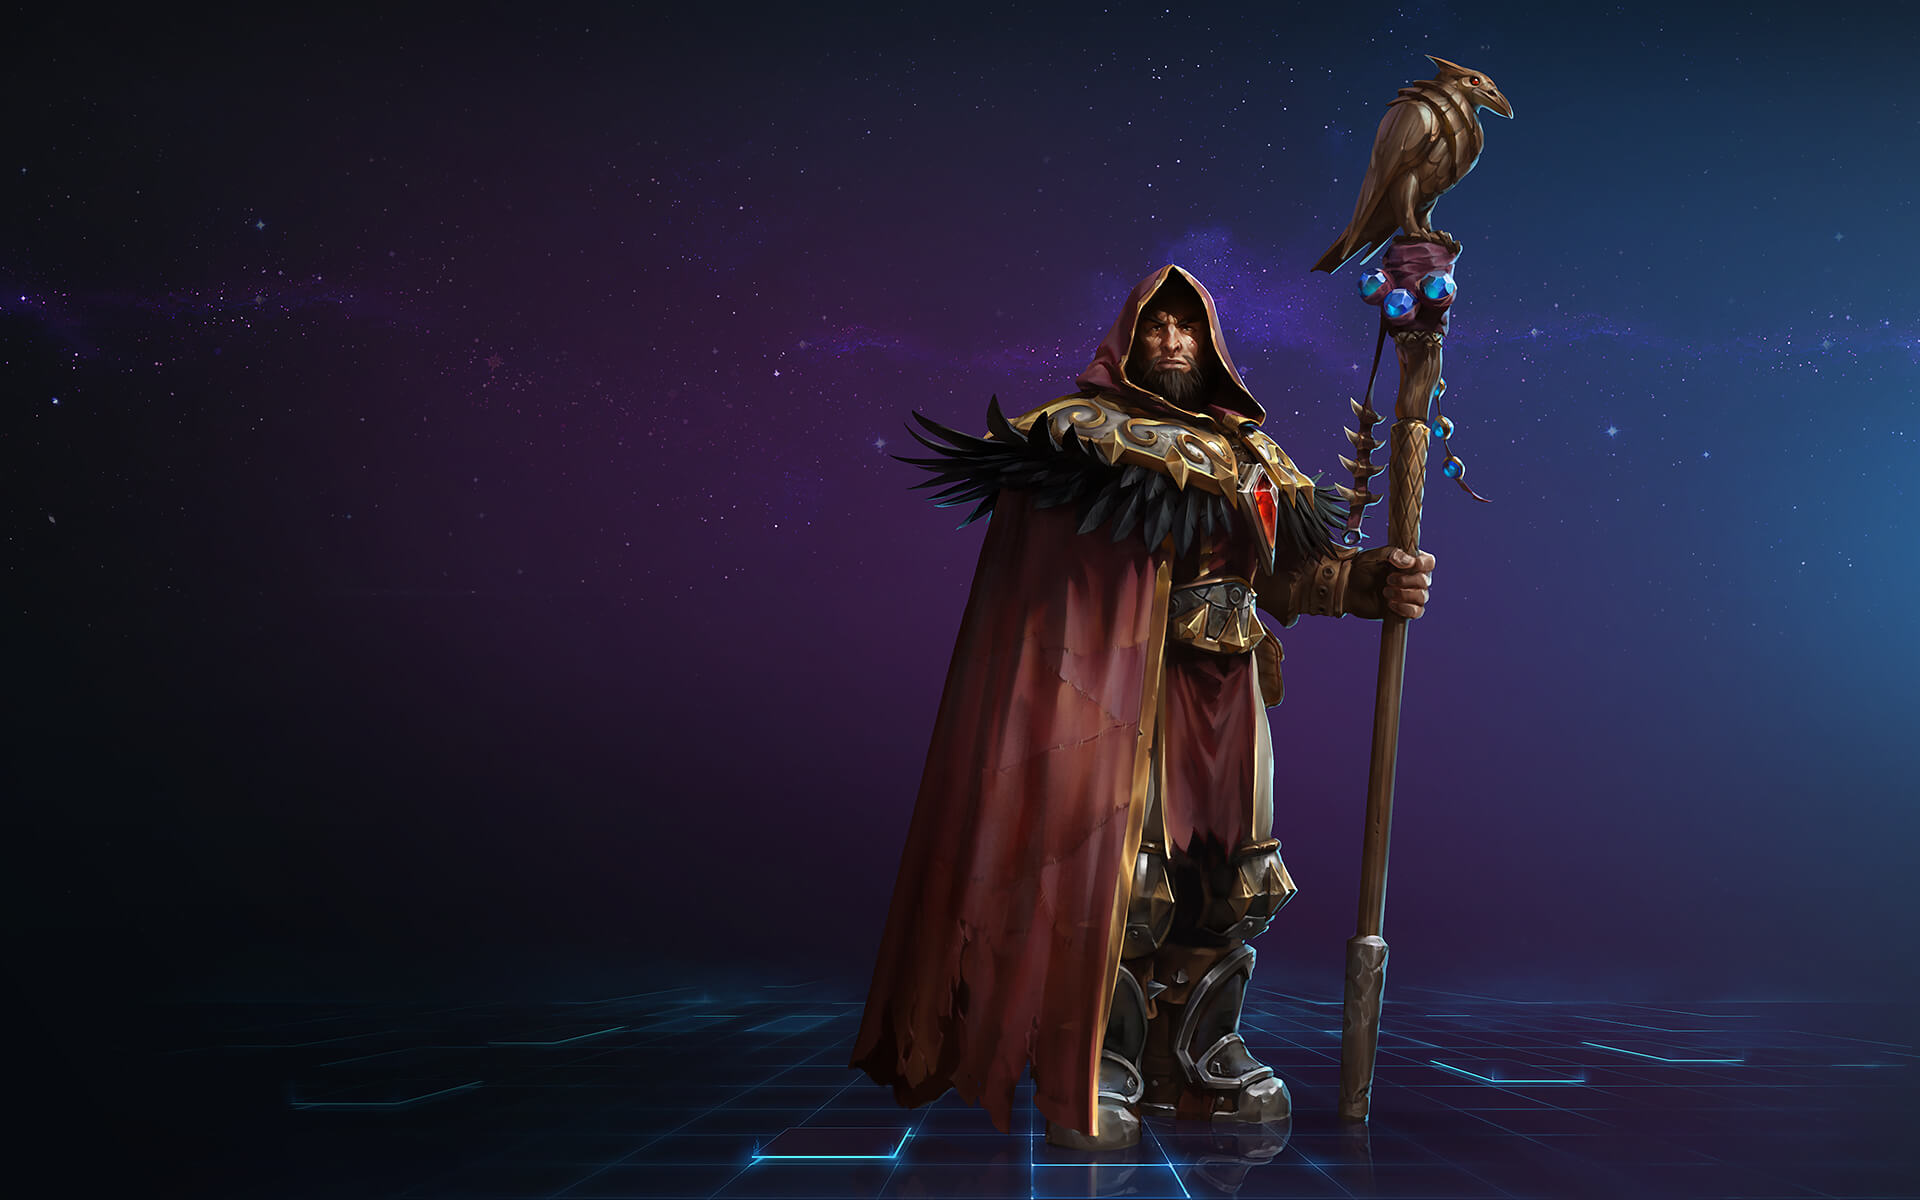 Heroes-of-the-Storm-Medivh_Artwork01